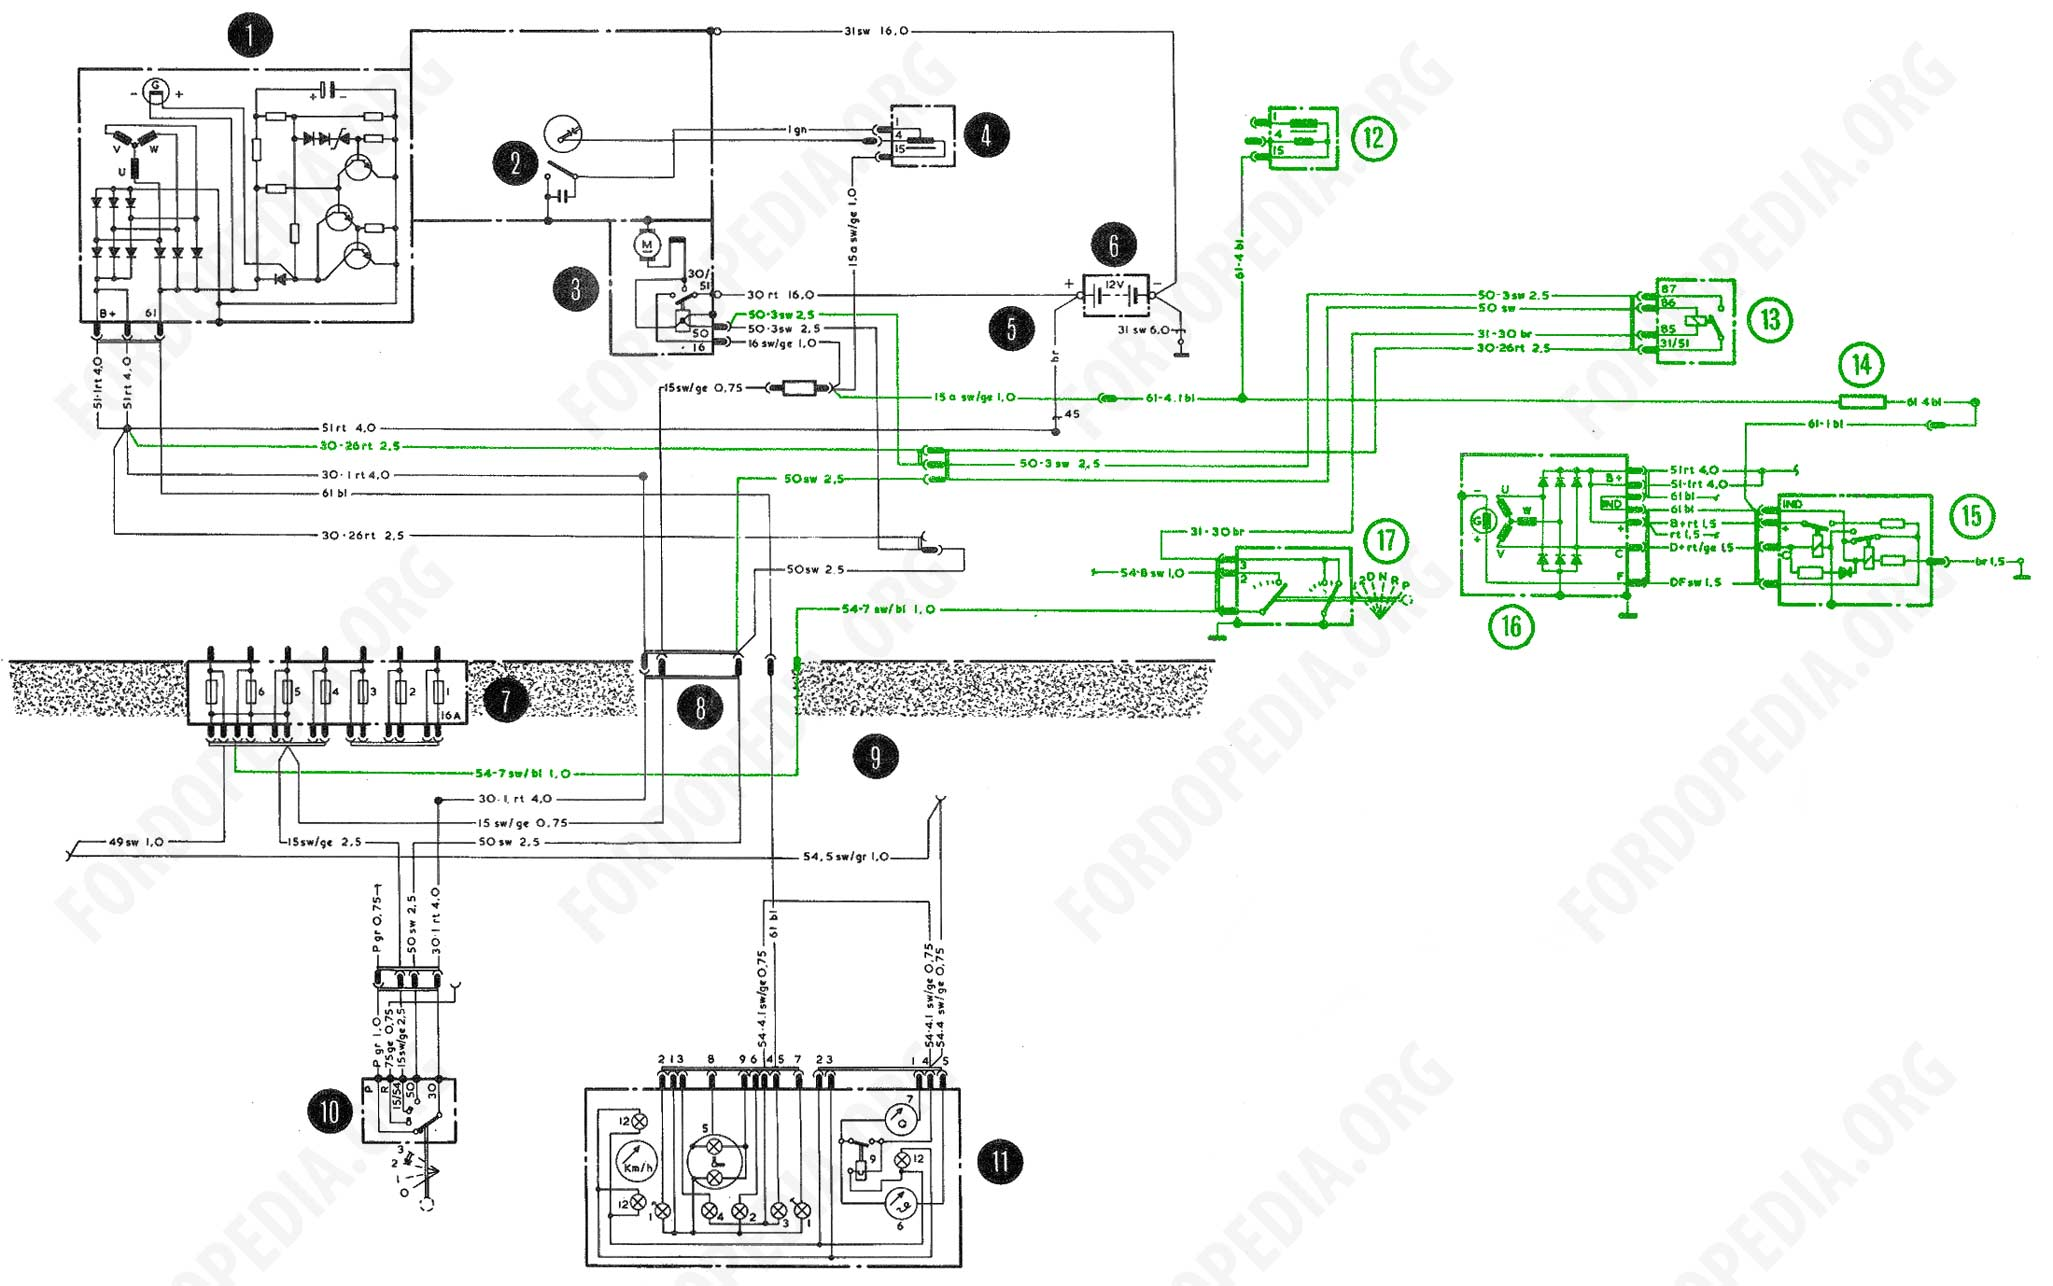 base L GL charging starter ignition circuit fordopedia org bosch ignition switch wiring diagram at reclaimingppi.co